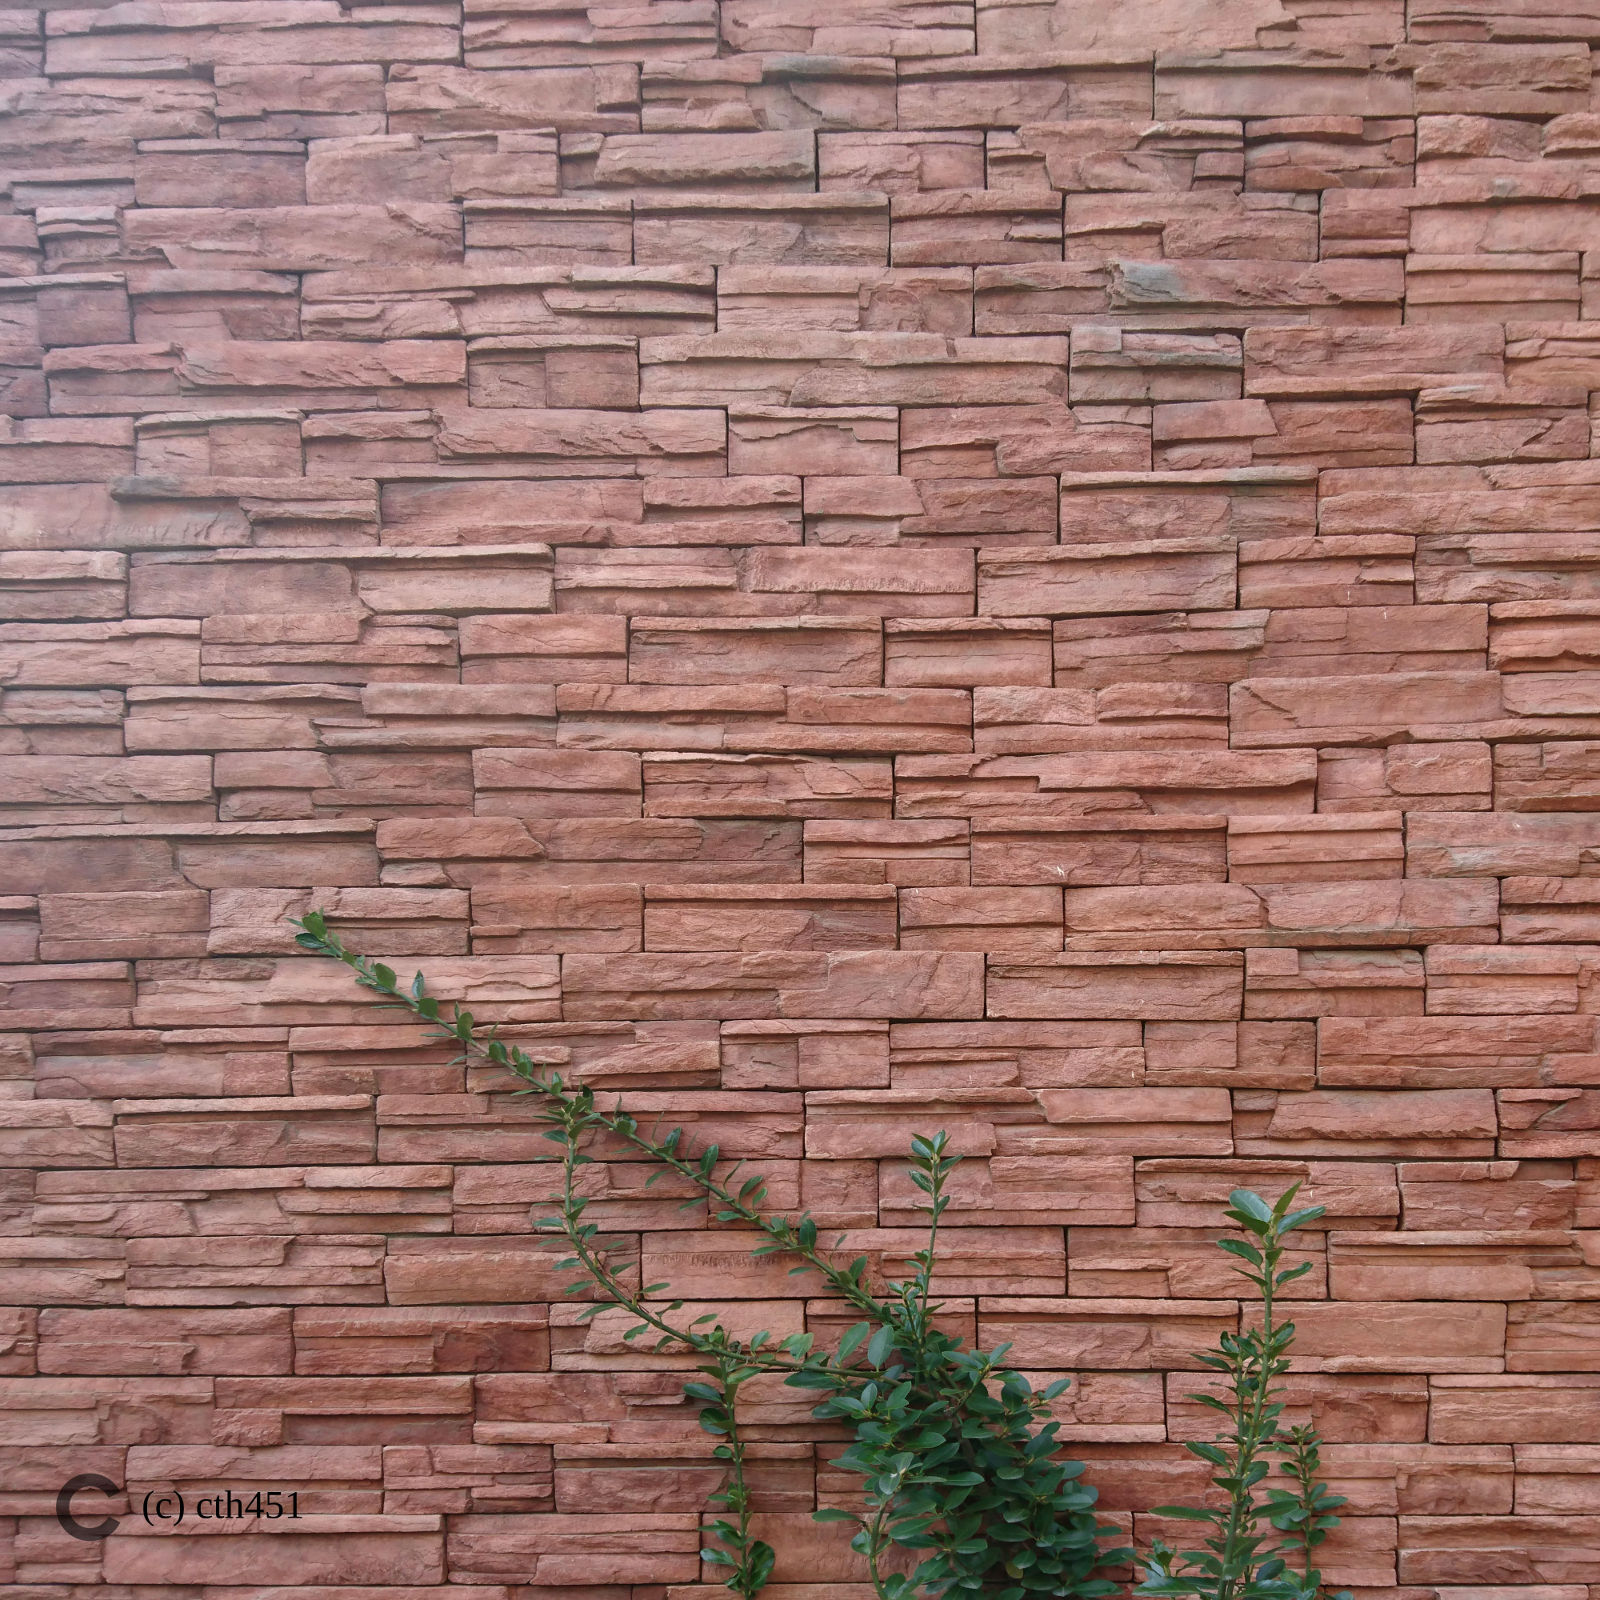 Veins on the brick wall